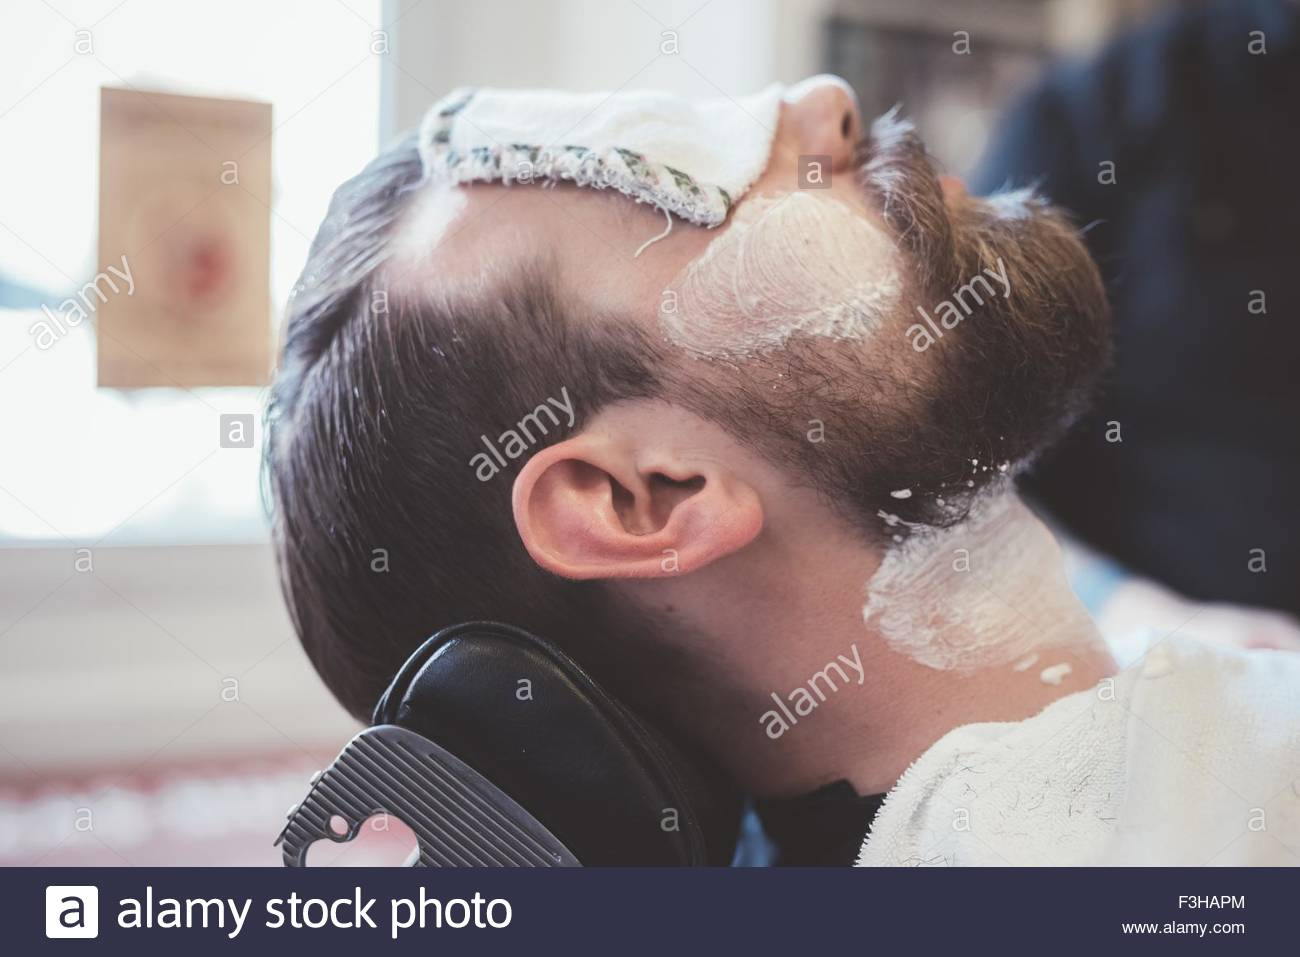 Male clients face with shaving cream and eyes covered in barber shop - Stock Image